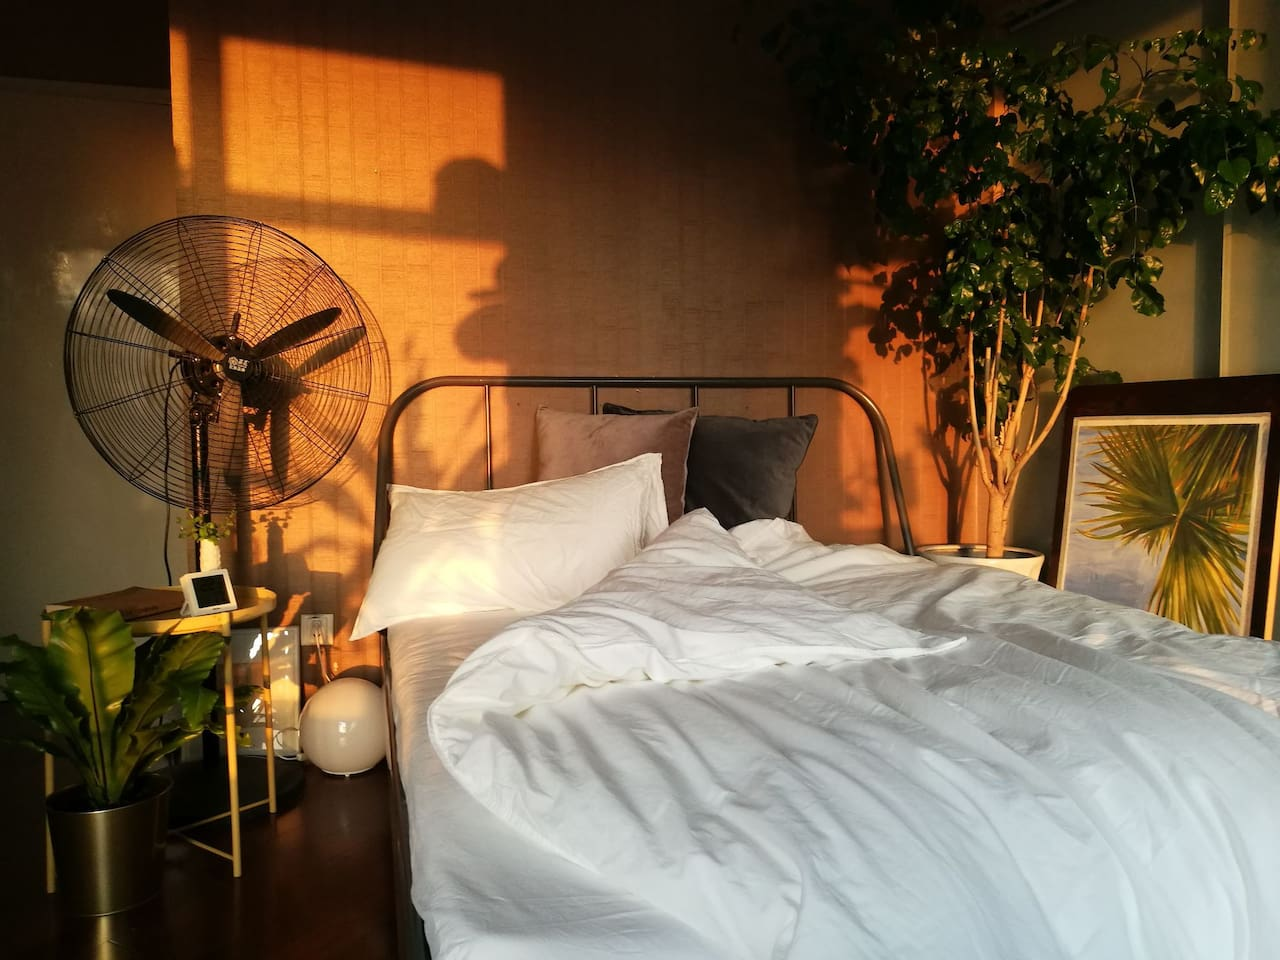 In the winter season, I move my bed towards the sunlight, you can enjoy Every Single moment of this city's beautiful sunset.(bed width 150cm)I'm always into inviting my close friends to come and enjoy the happiness sunset moment with me.